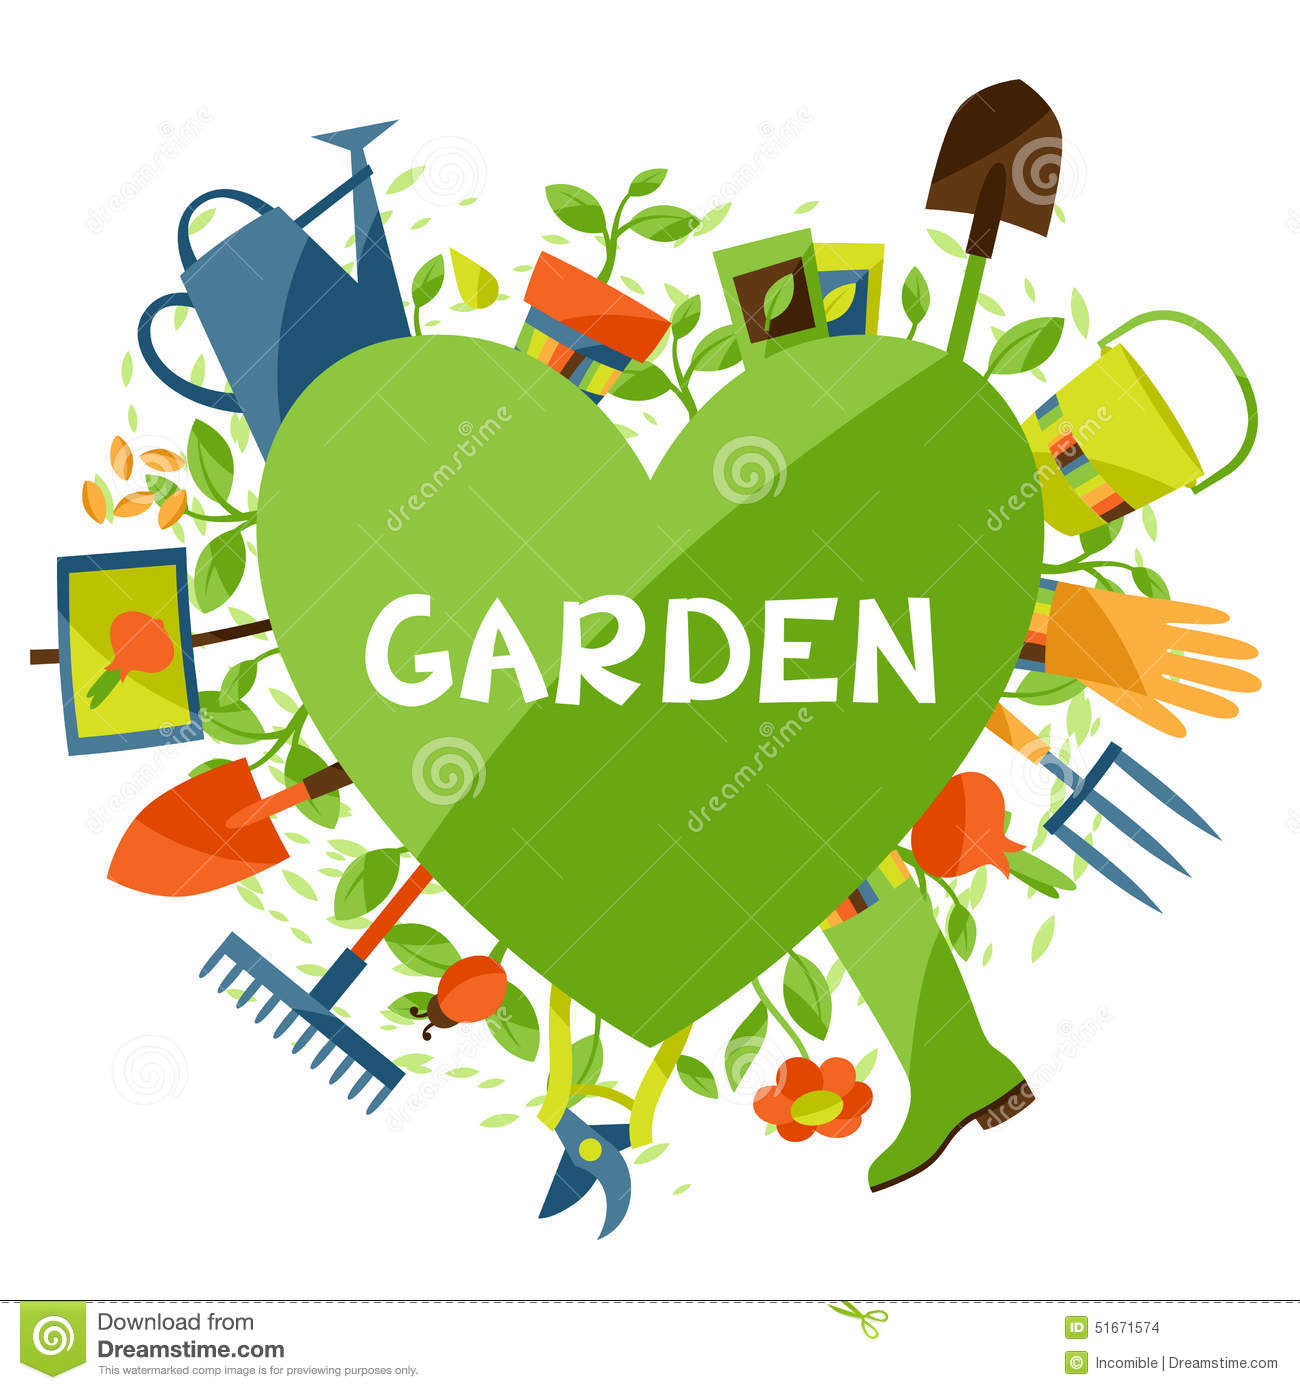 Background with garden design elements and icons stock for Garden design elements